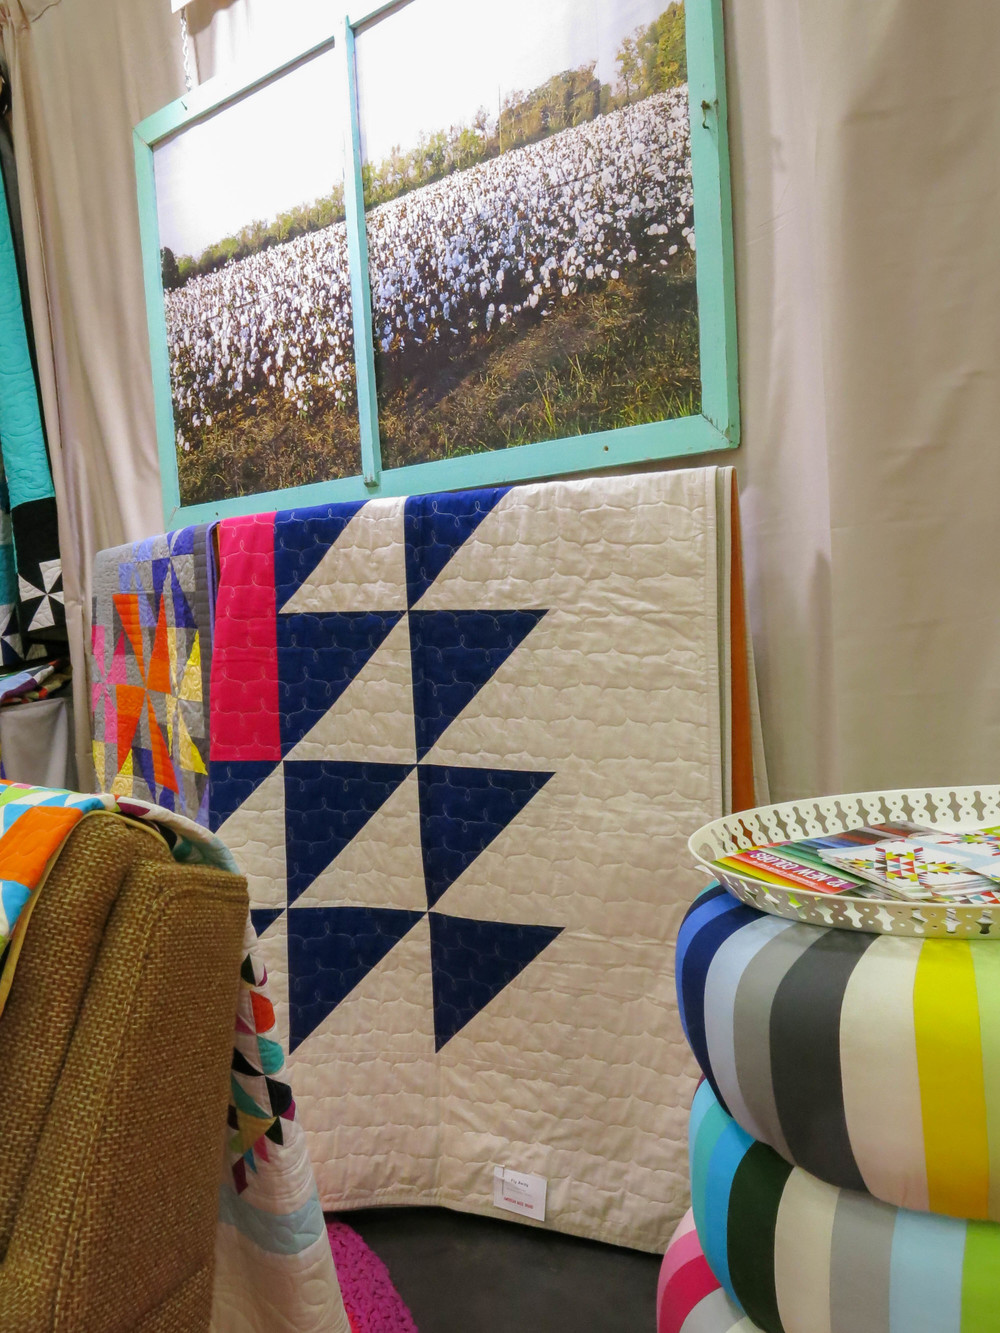 A Heather Jones Quilt in the American Made Booth at Market in Houston, 10/14